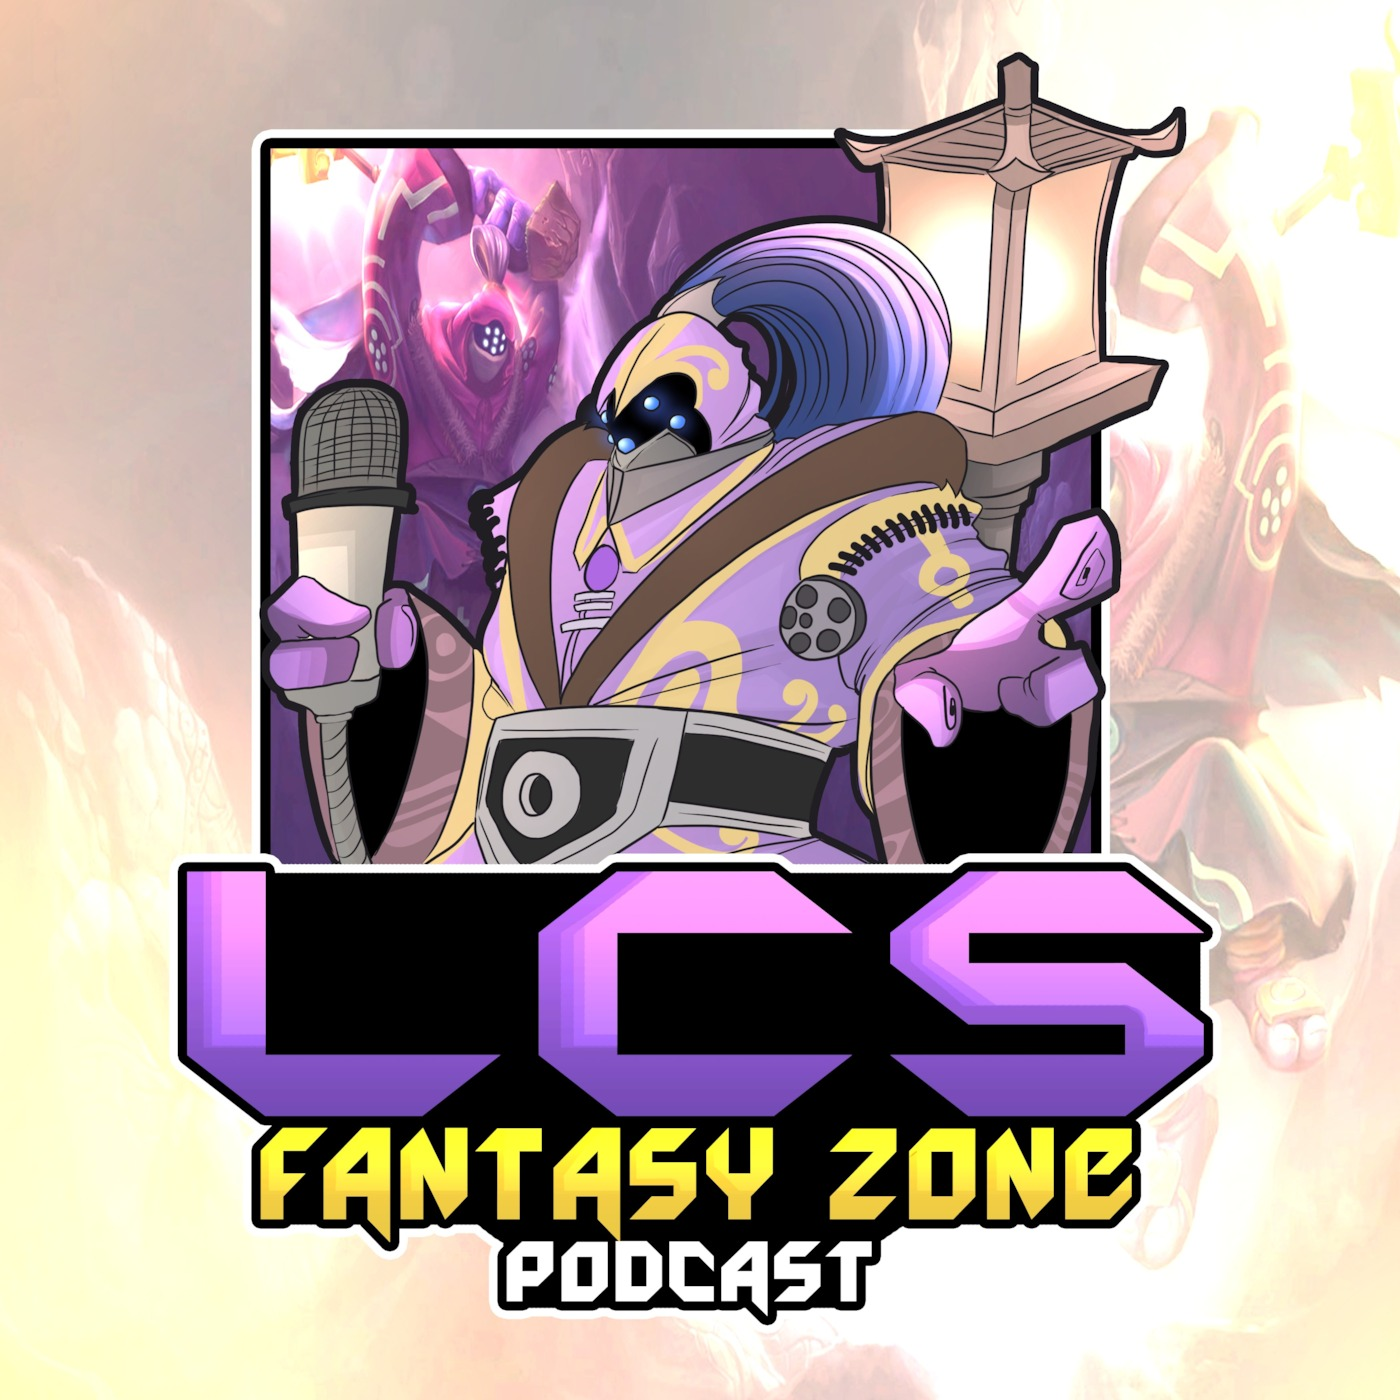 Lcs fantasy zone podcast e2 w5 lcs fantasy zone podcast episode 2 week 5 everything you need to know to help you win your fantasy lcs for week 5 tell everyone but dont tell your league sciox Choice Image